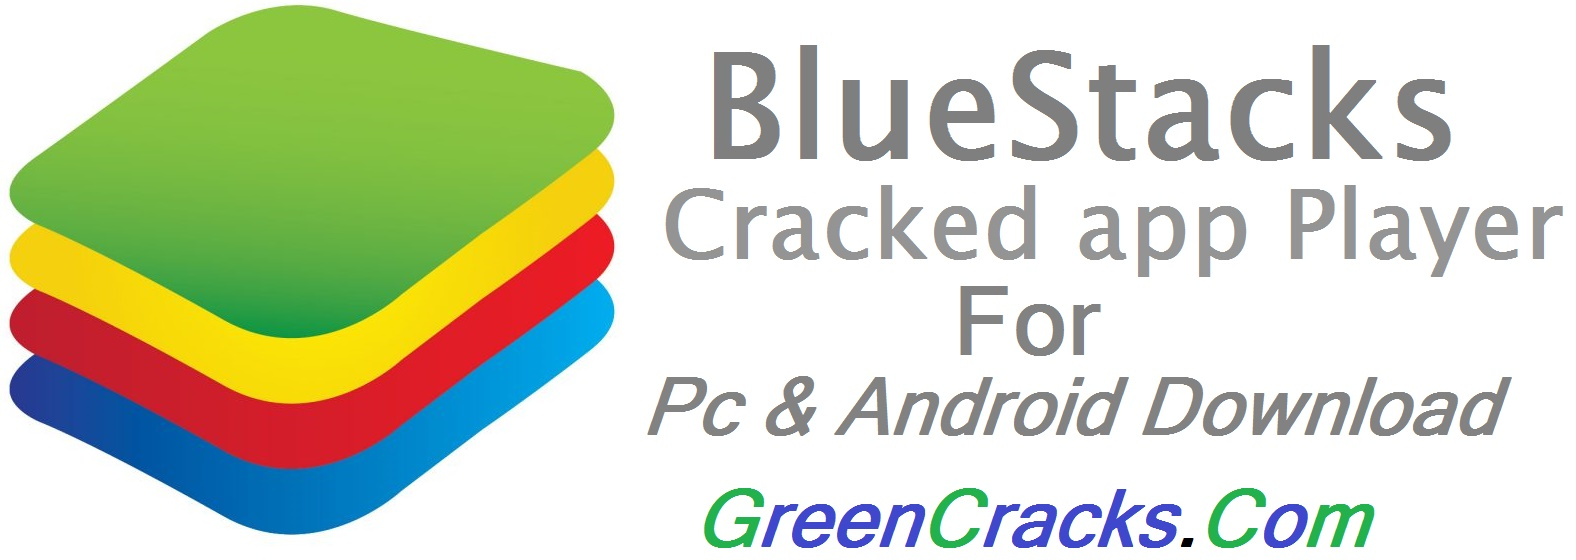 BlueStacks Cracked